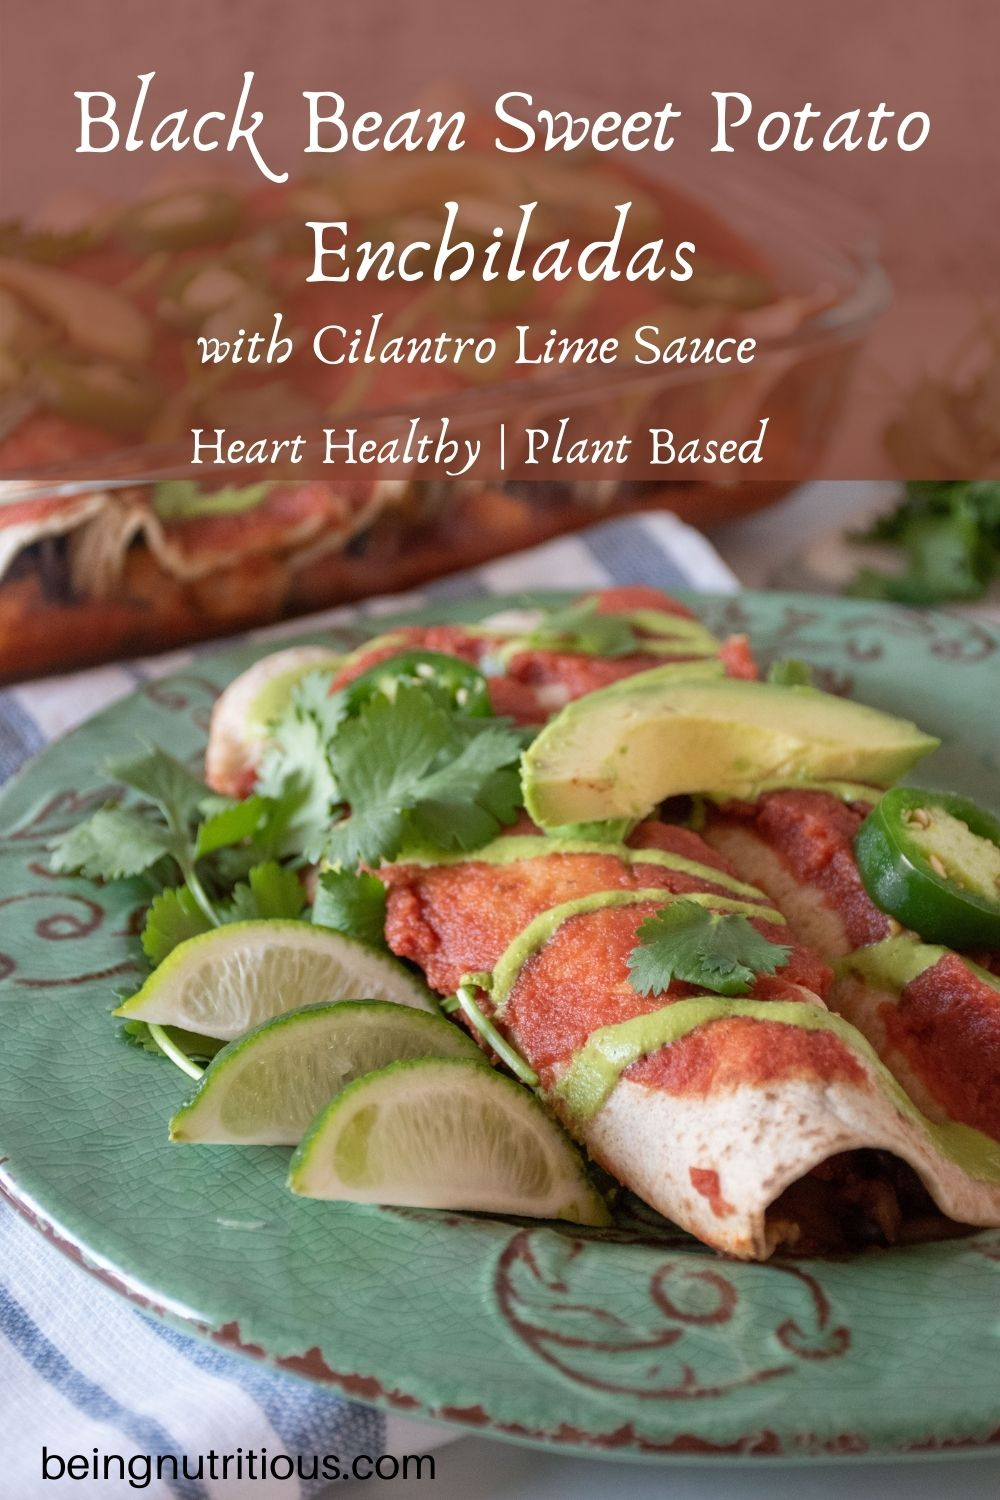 Close up of enchiladas on a plate and pan of enchiladas in background. Text overlay: Black Bean Sweet Potato Enchiladas with Cilantro Lime Sauce; Heart Healthy, Plant Based.